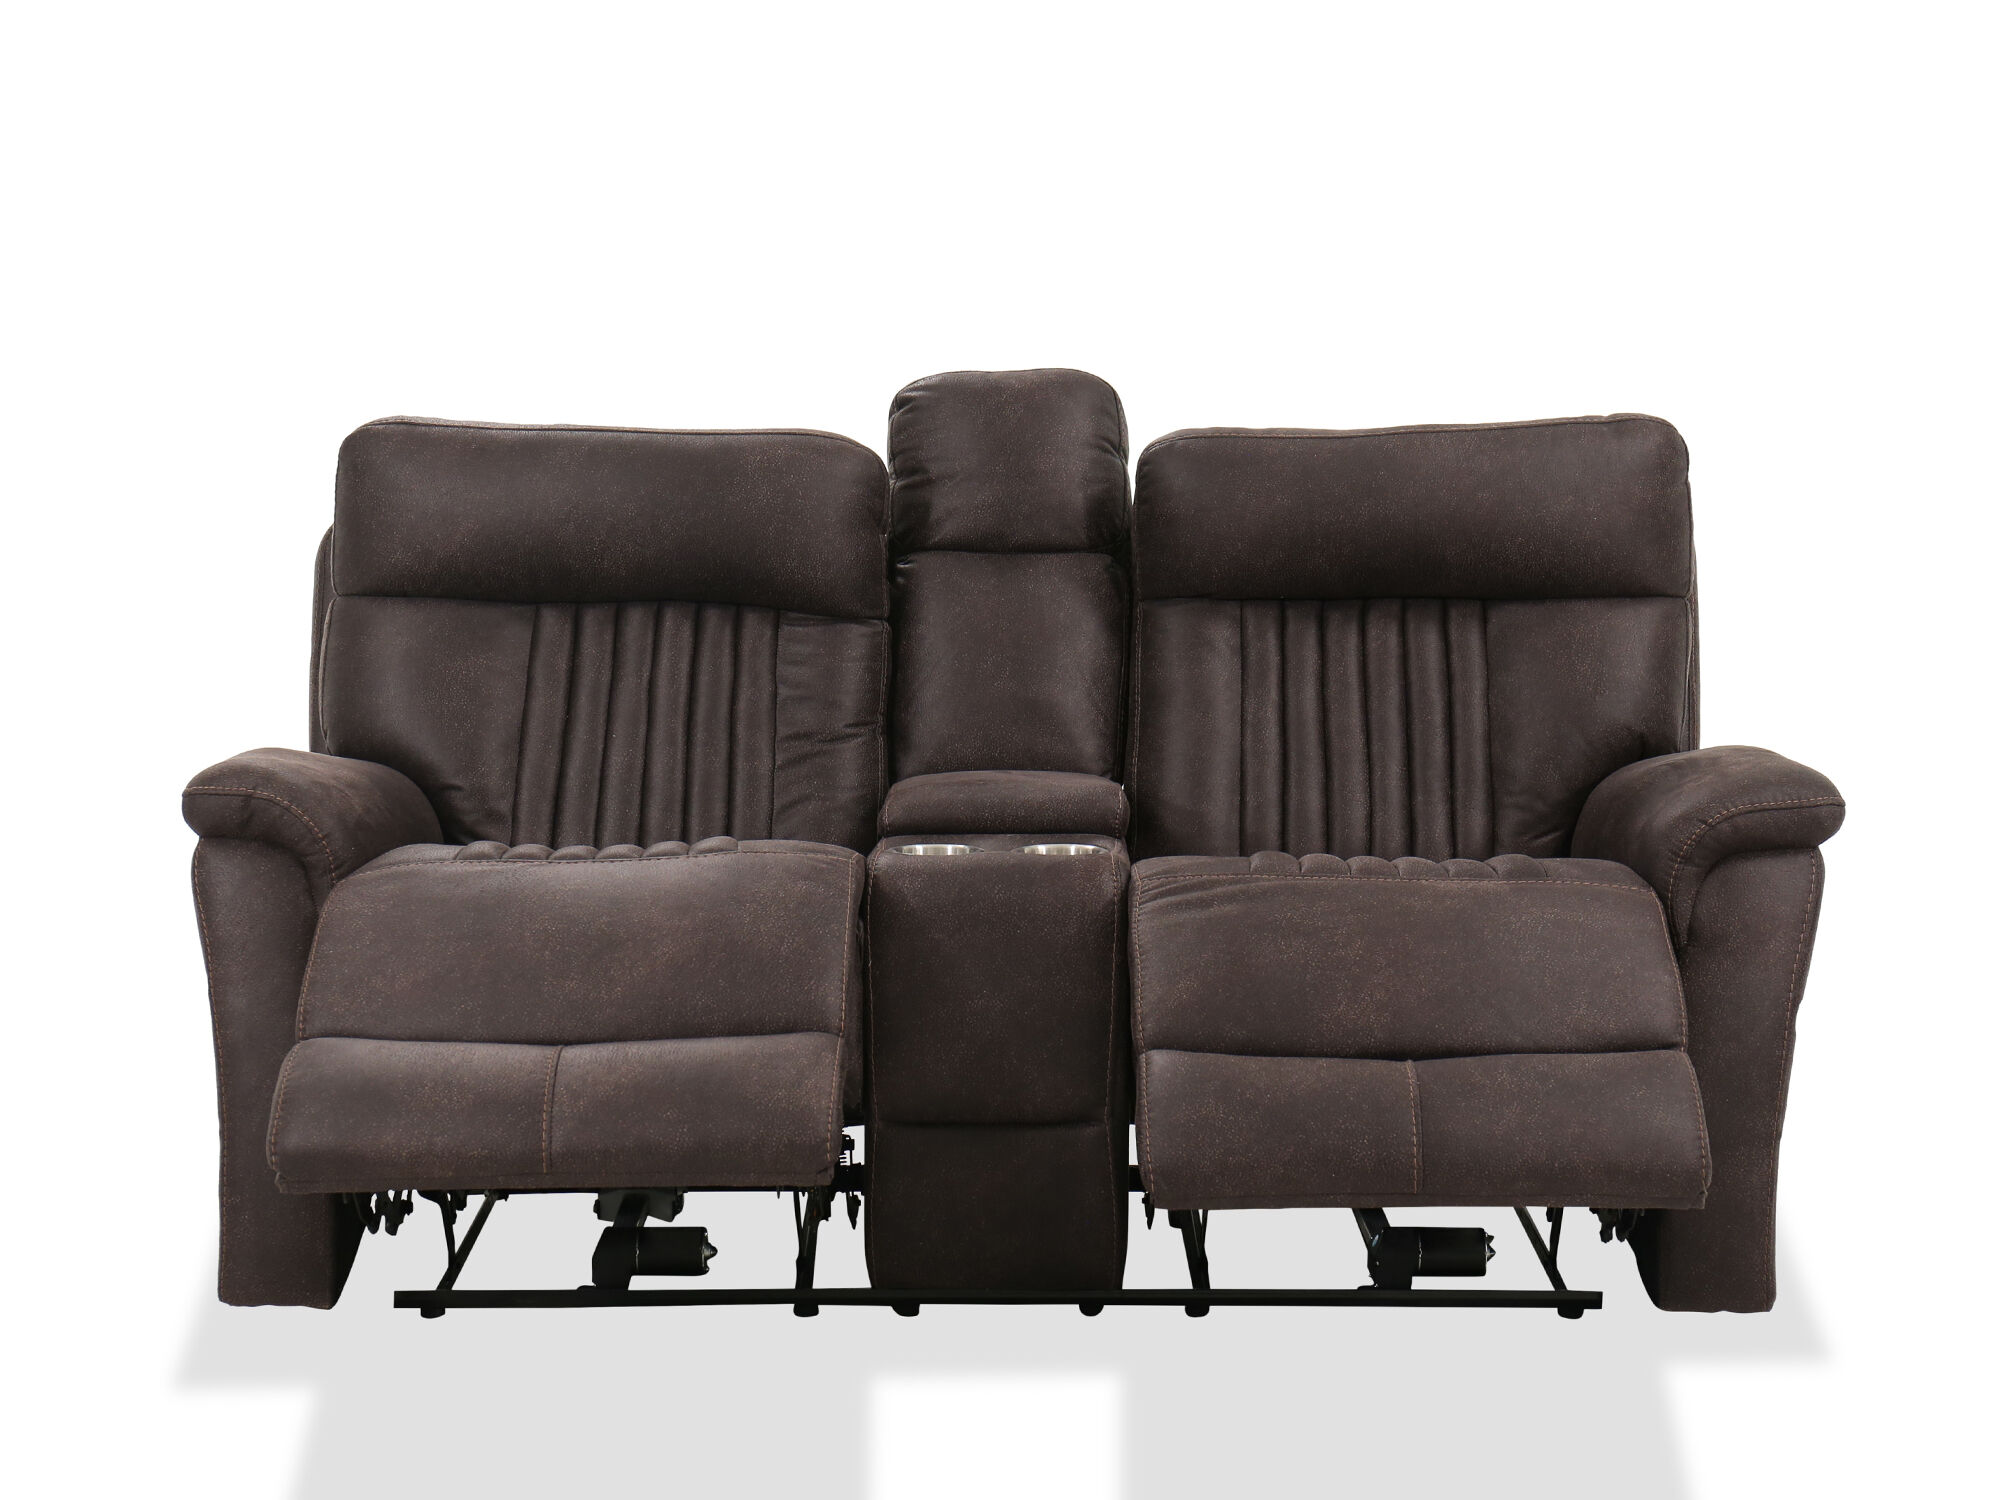 Casual 76 Power Reclining Loveseat With Console In